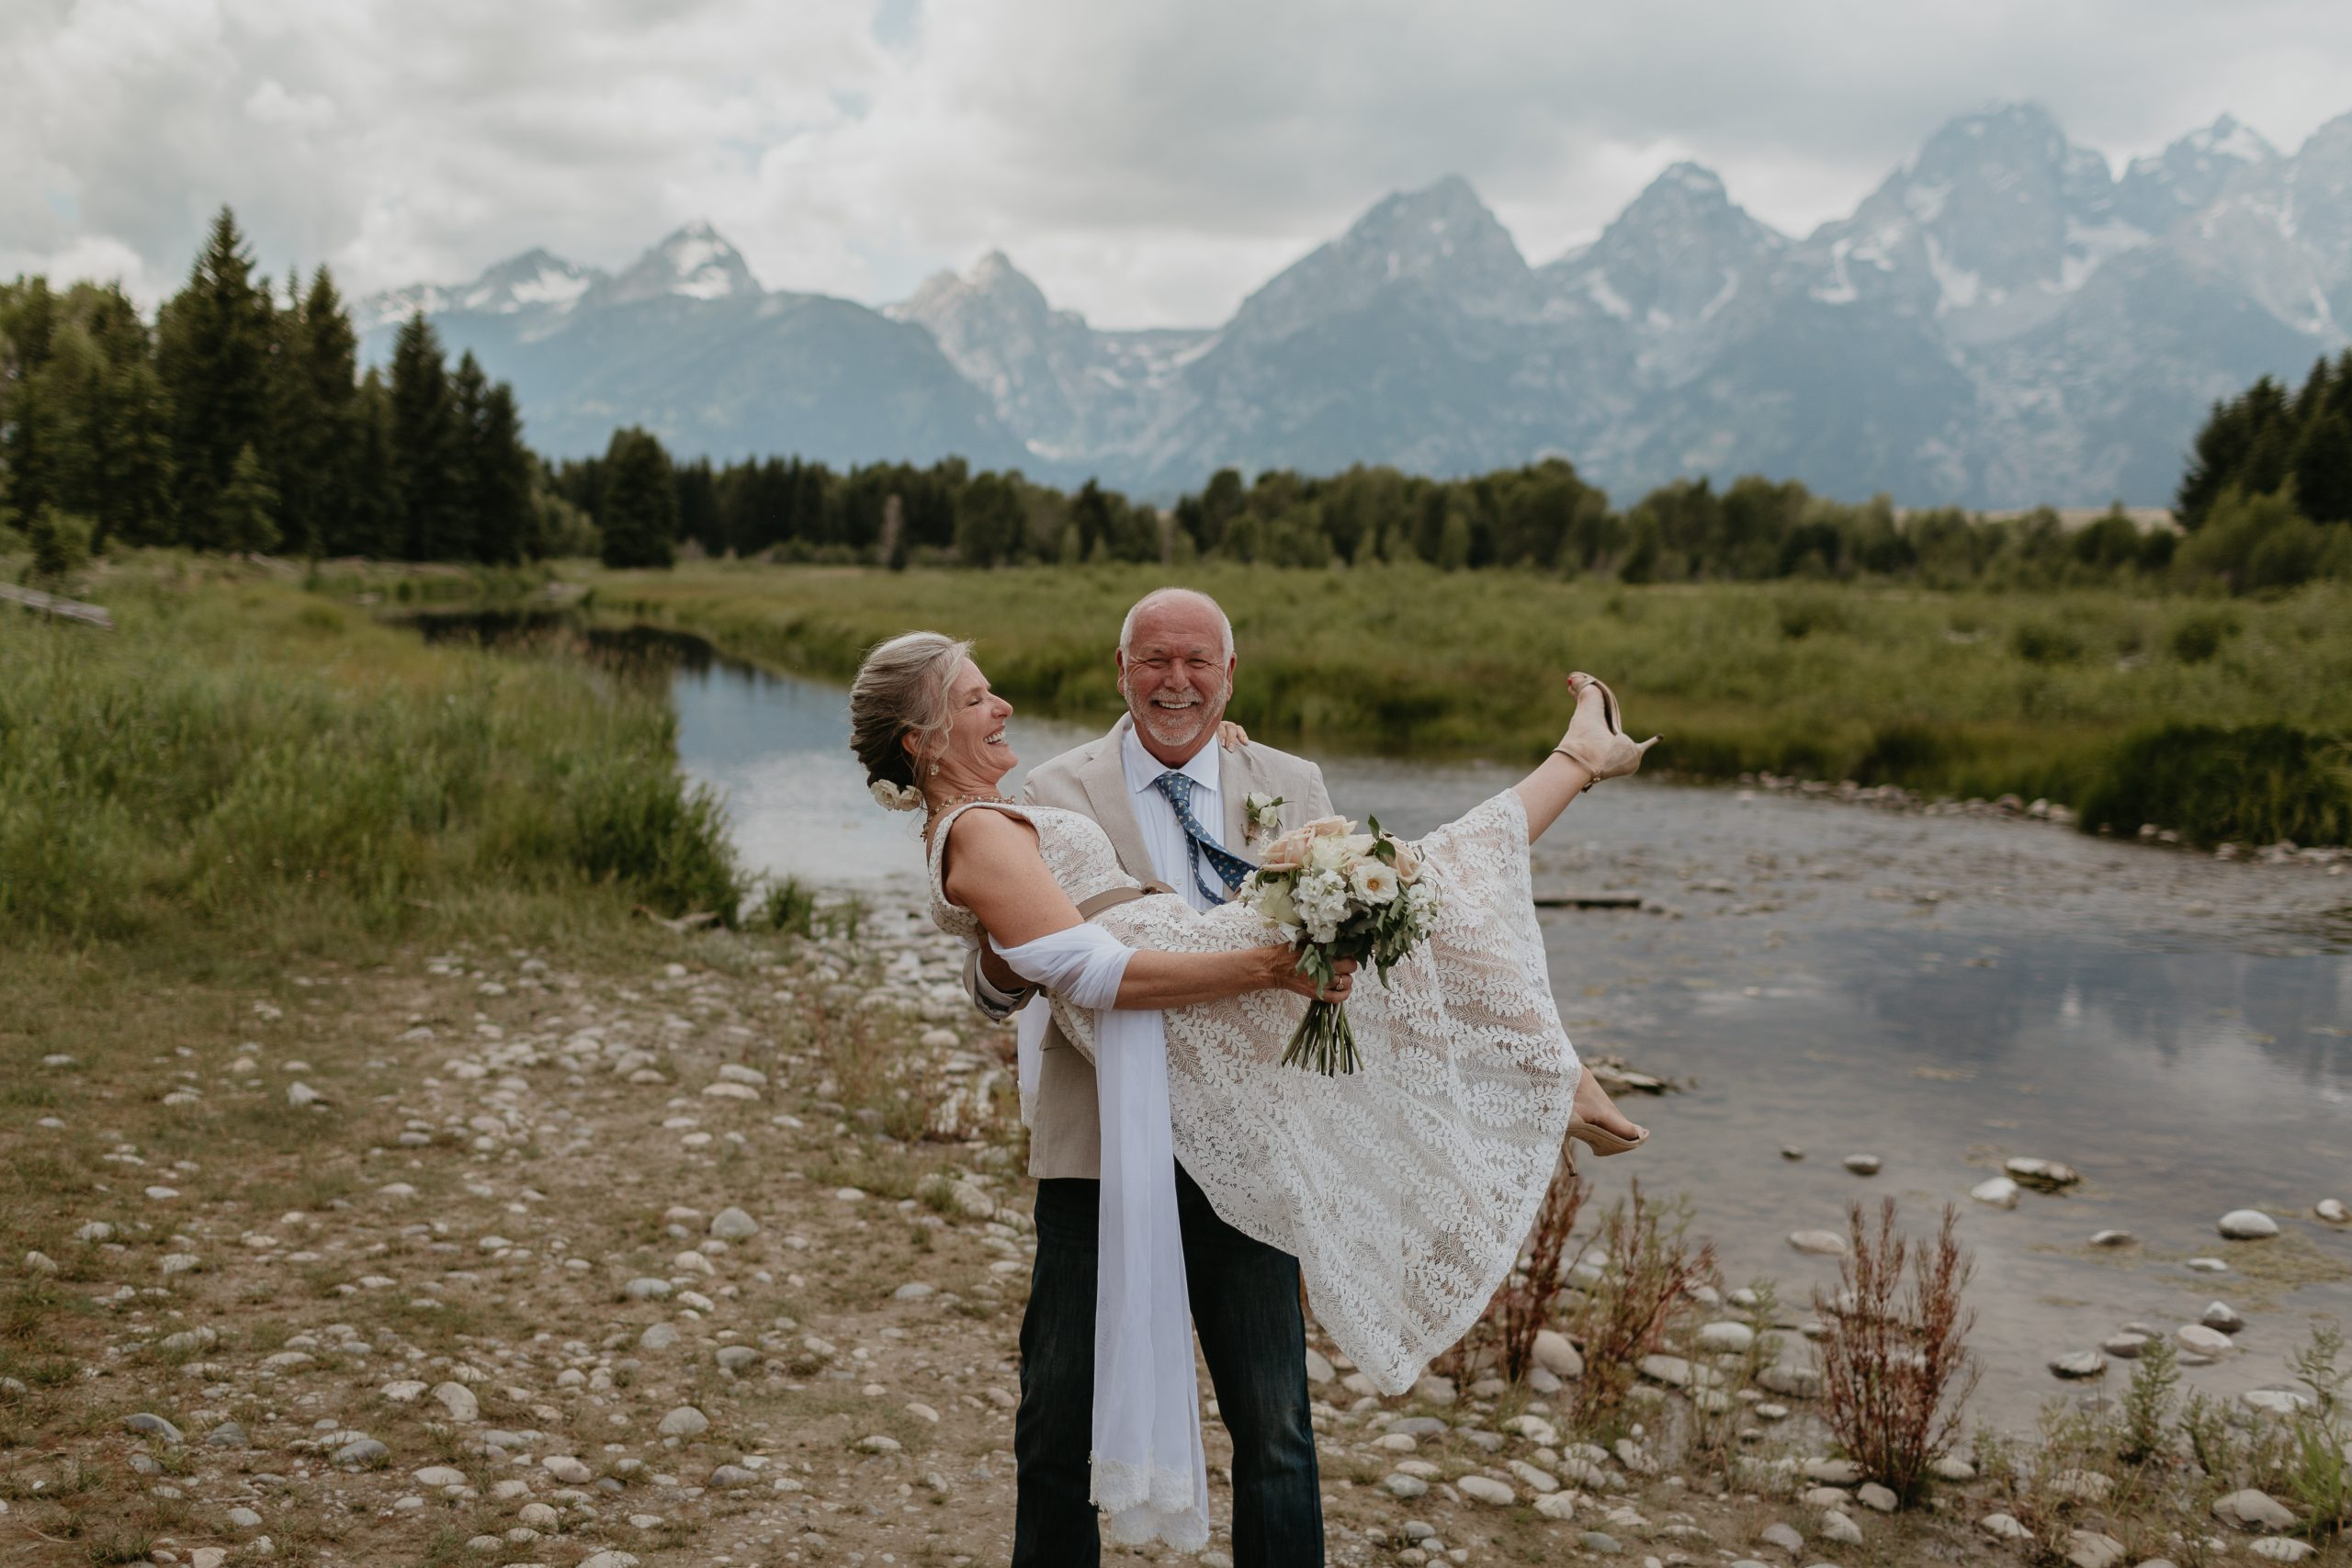 Anne + Jim | Jackson Hole Wedding